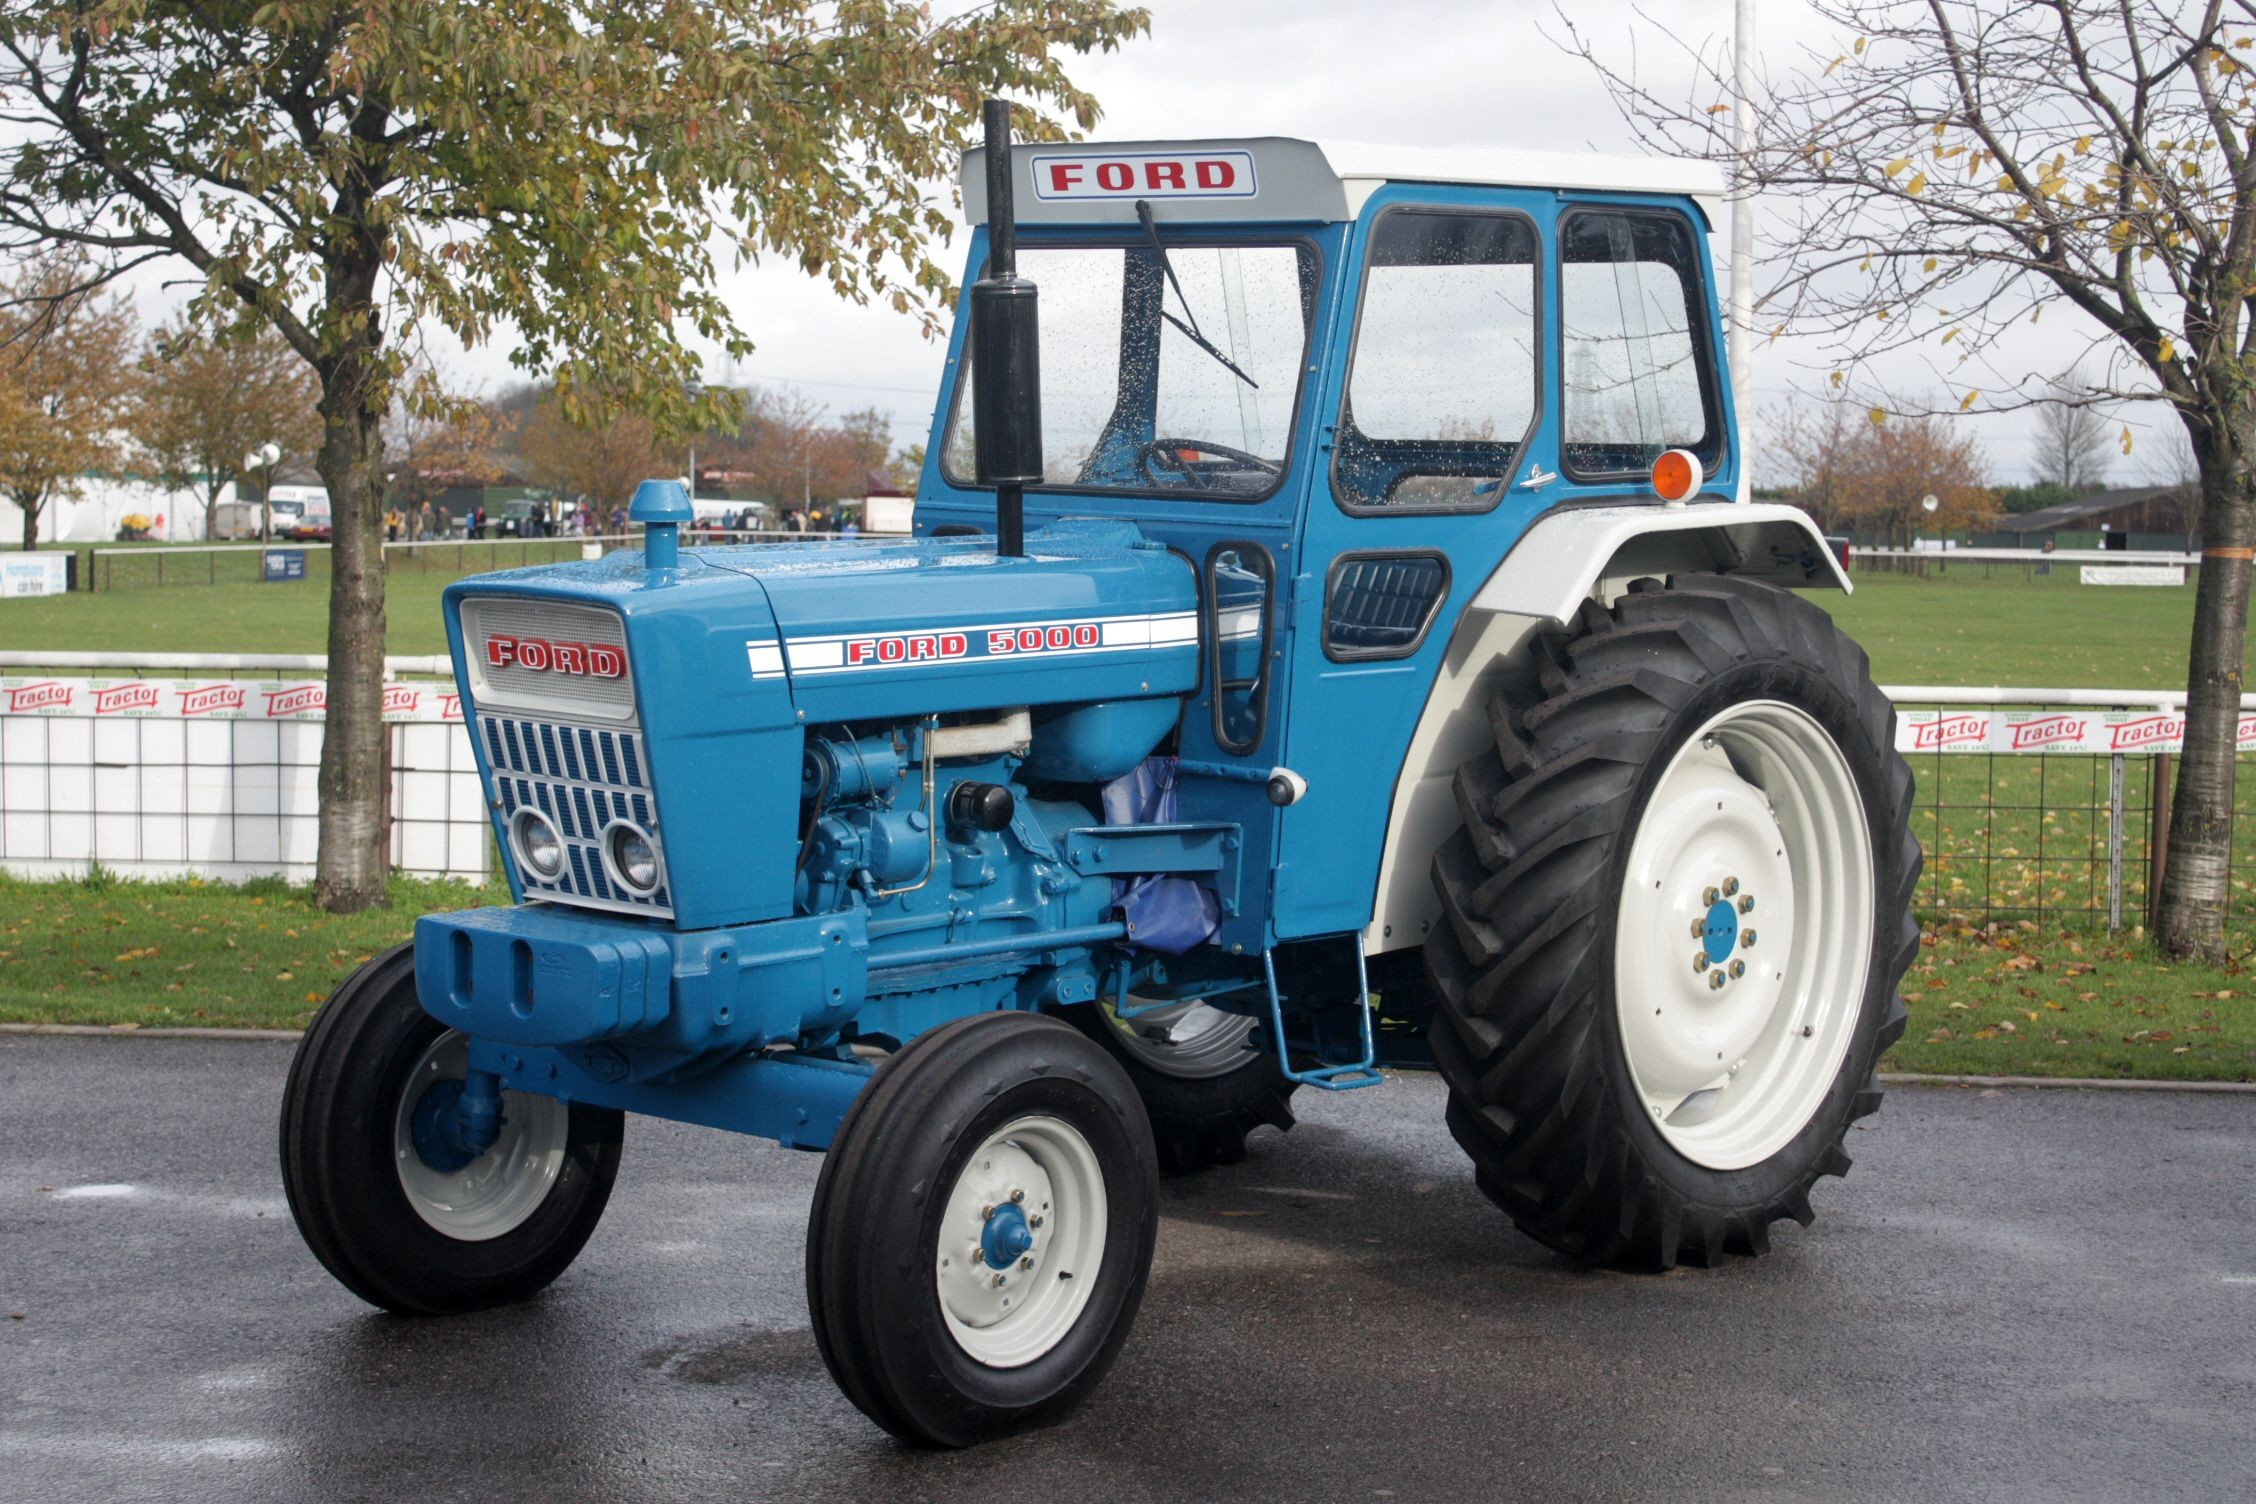 Ford 3600 Tractor Parts Diagram ford 5000 ☼ Tractor Mania ☼ Pinterest Of Ford 3600 Tractor Parts Diagram